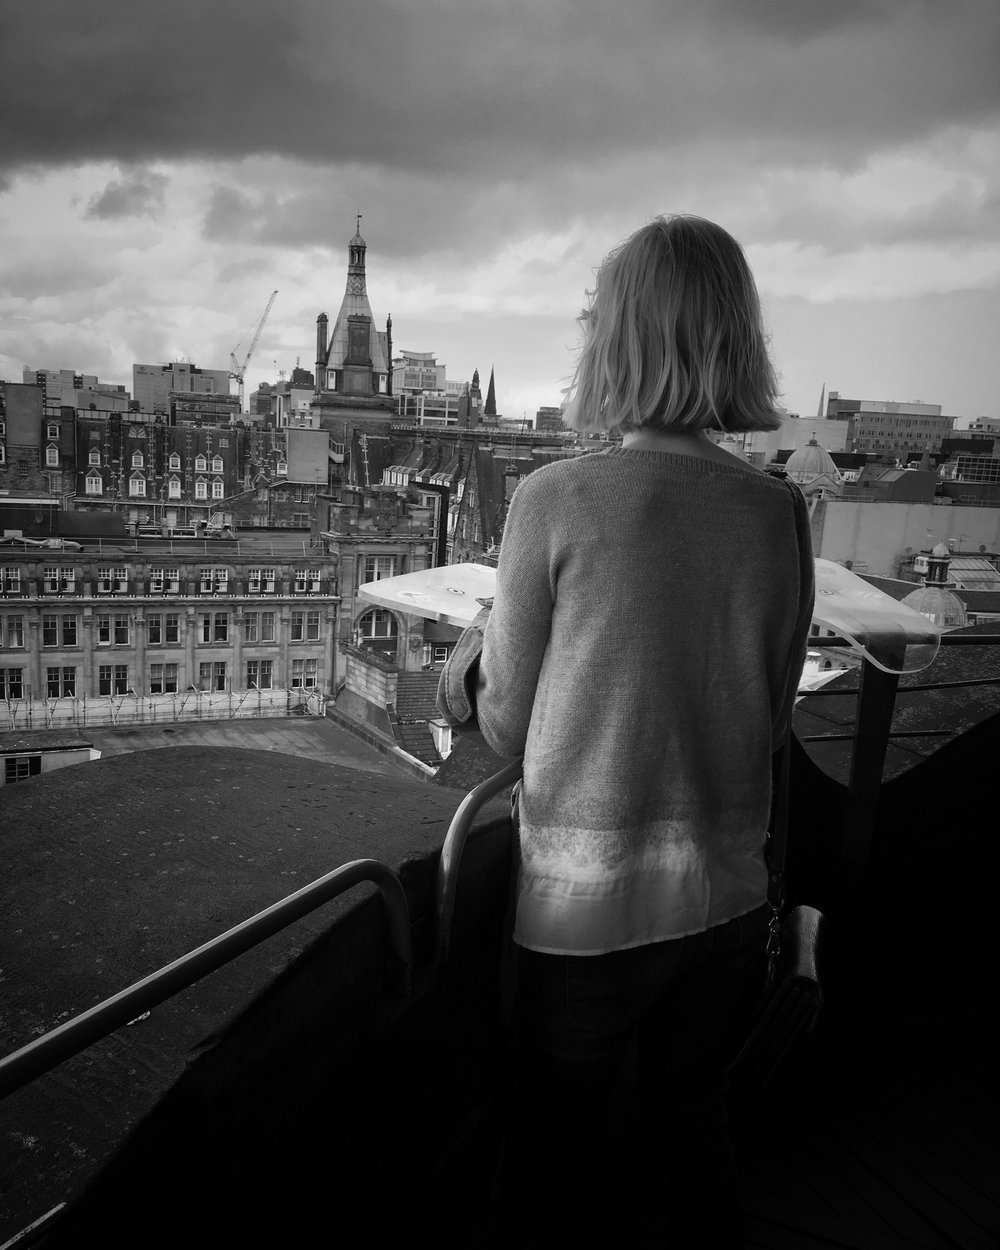 Freja looking out into the distance at all of the buildings